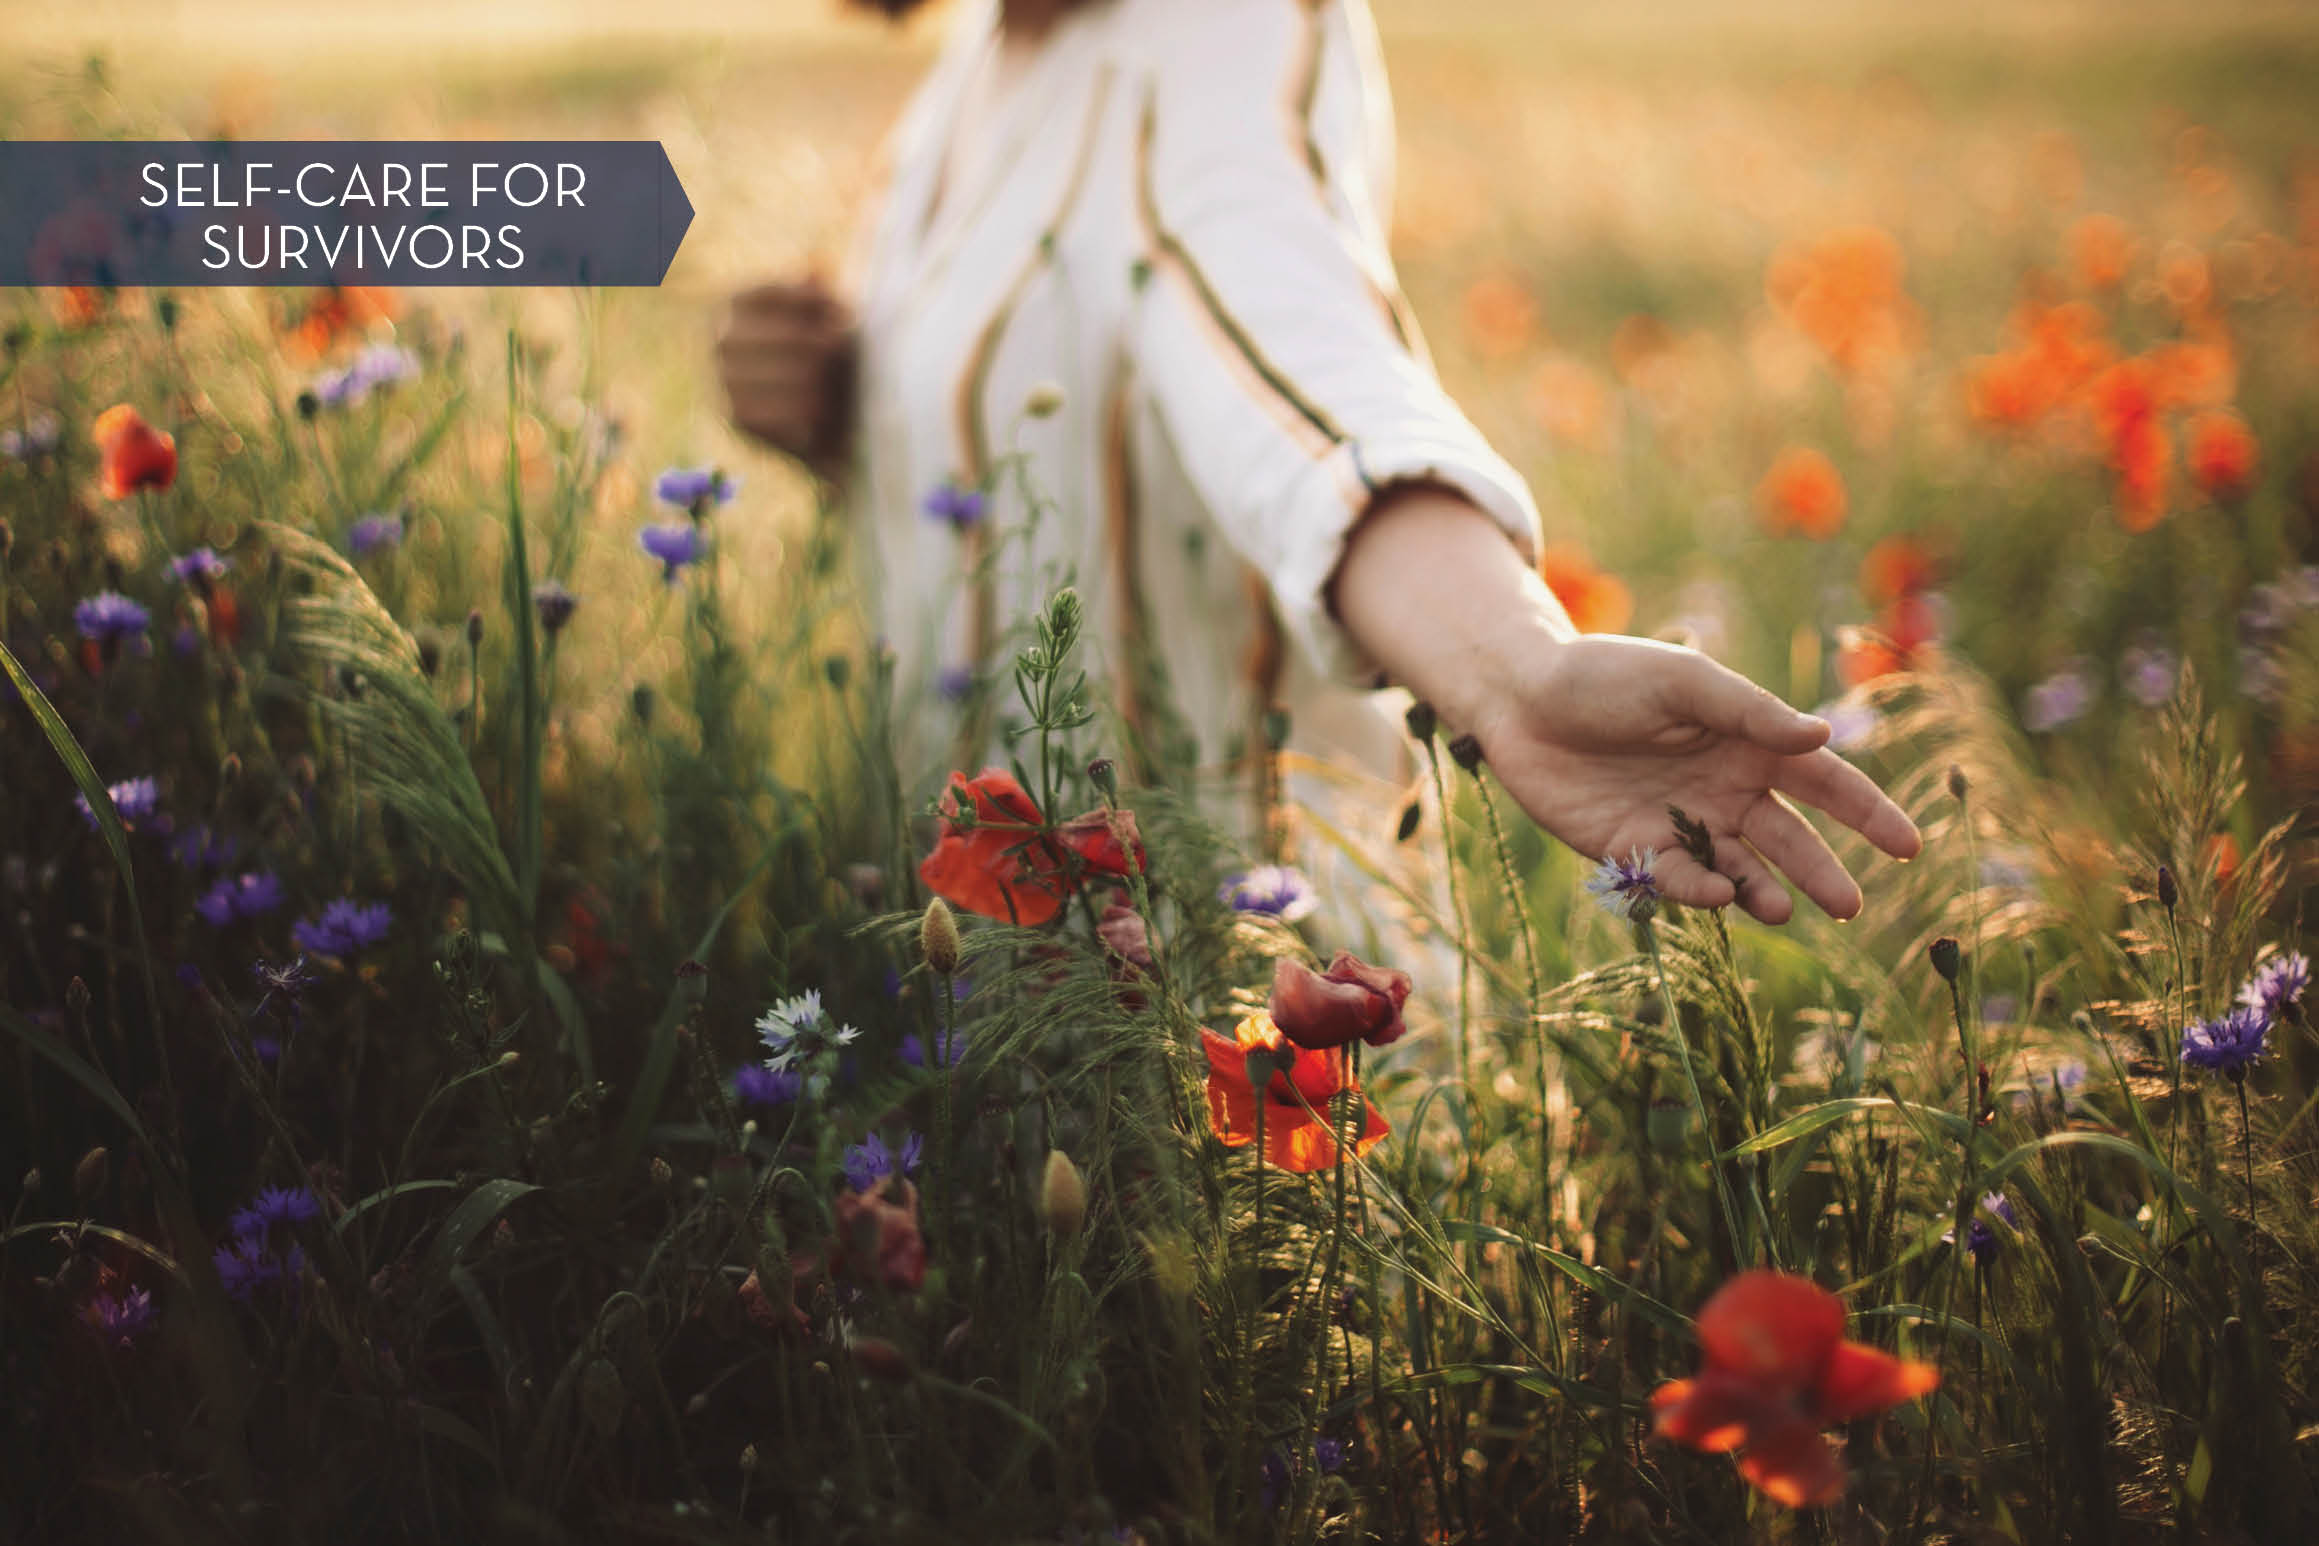 a woman walks in a field of wildflowers and reaches out to touch the flowers